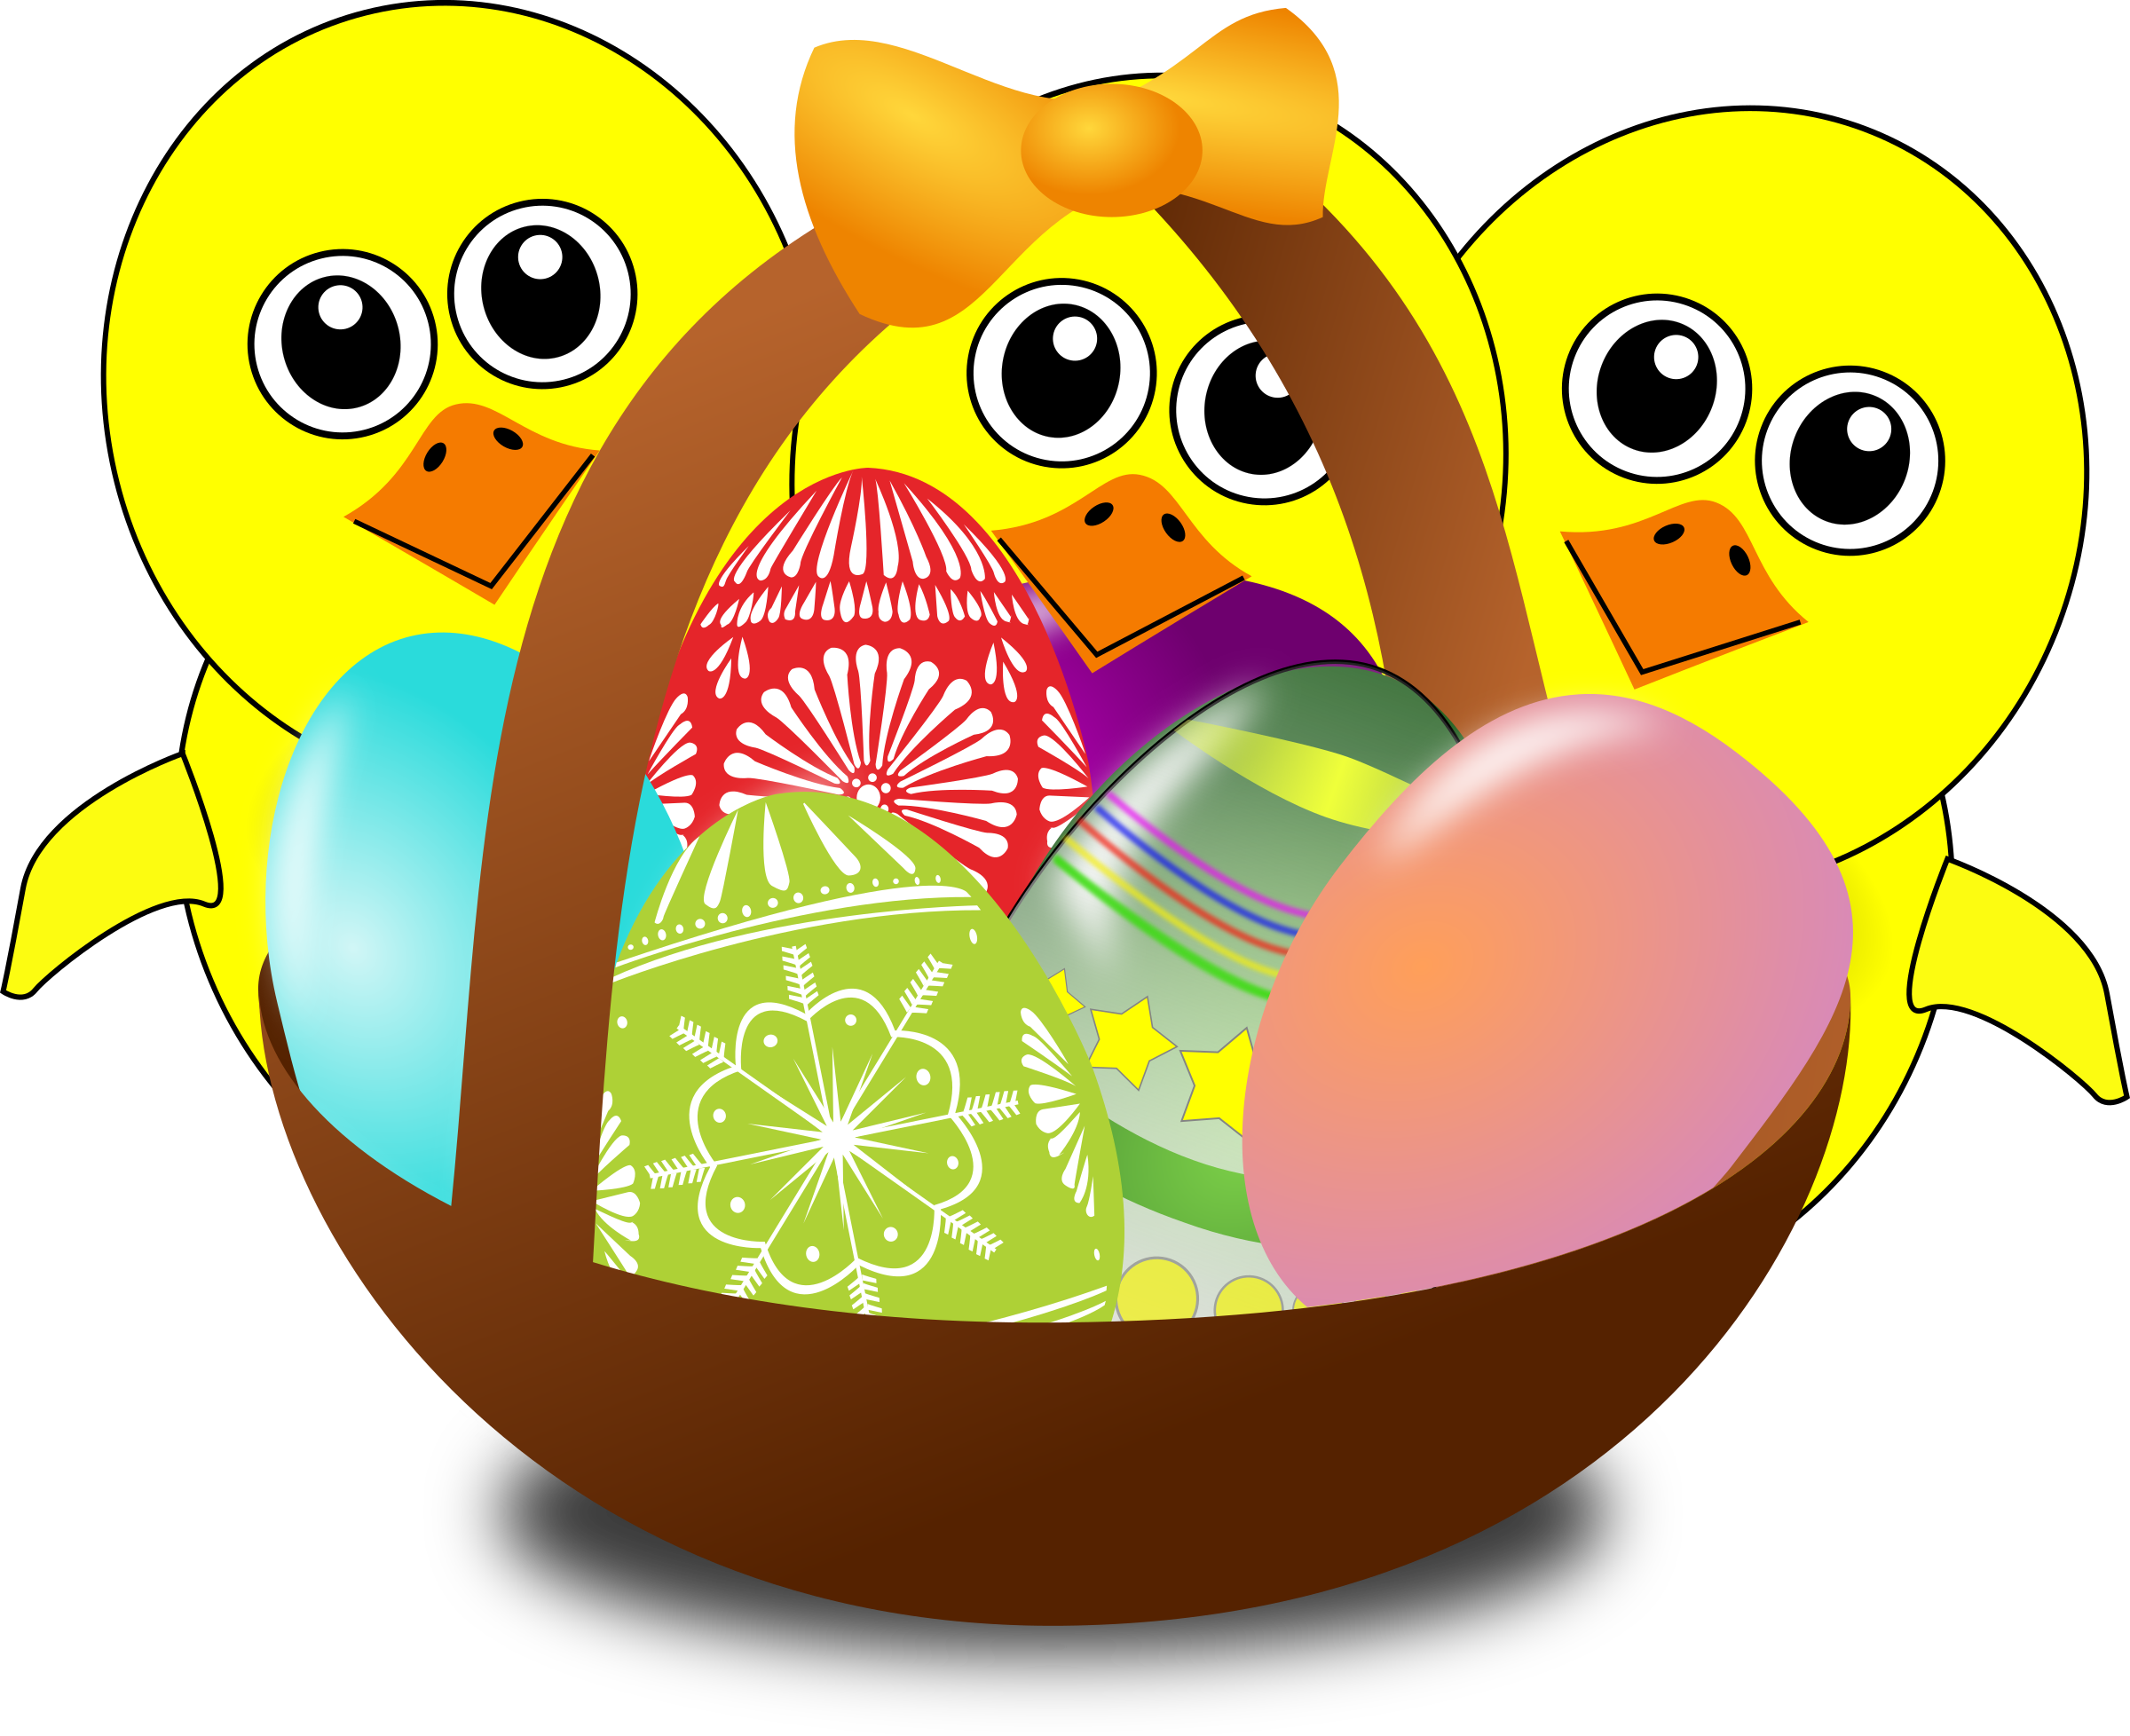 Egg hunt clipart clip royalty free stock EASTER EGG HUNT | Parish Public Library clip royalty free stock